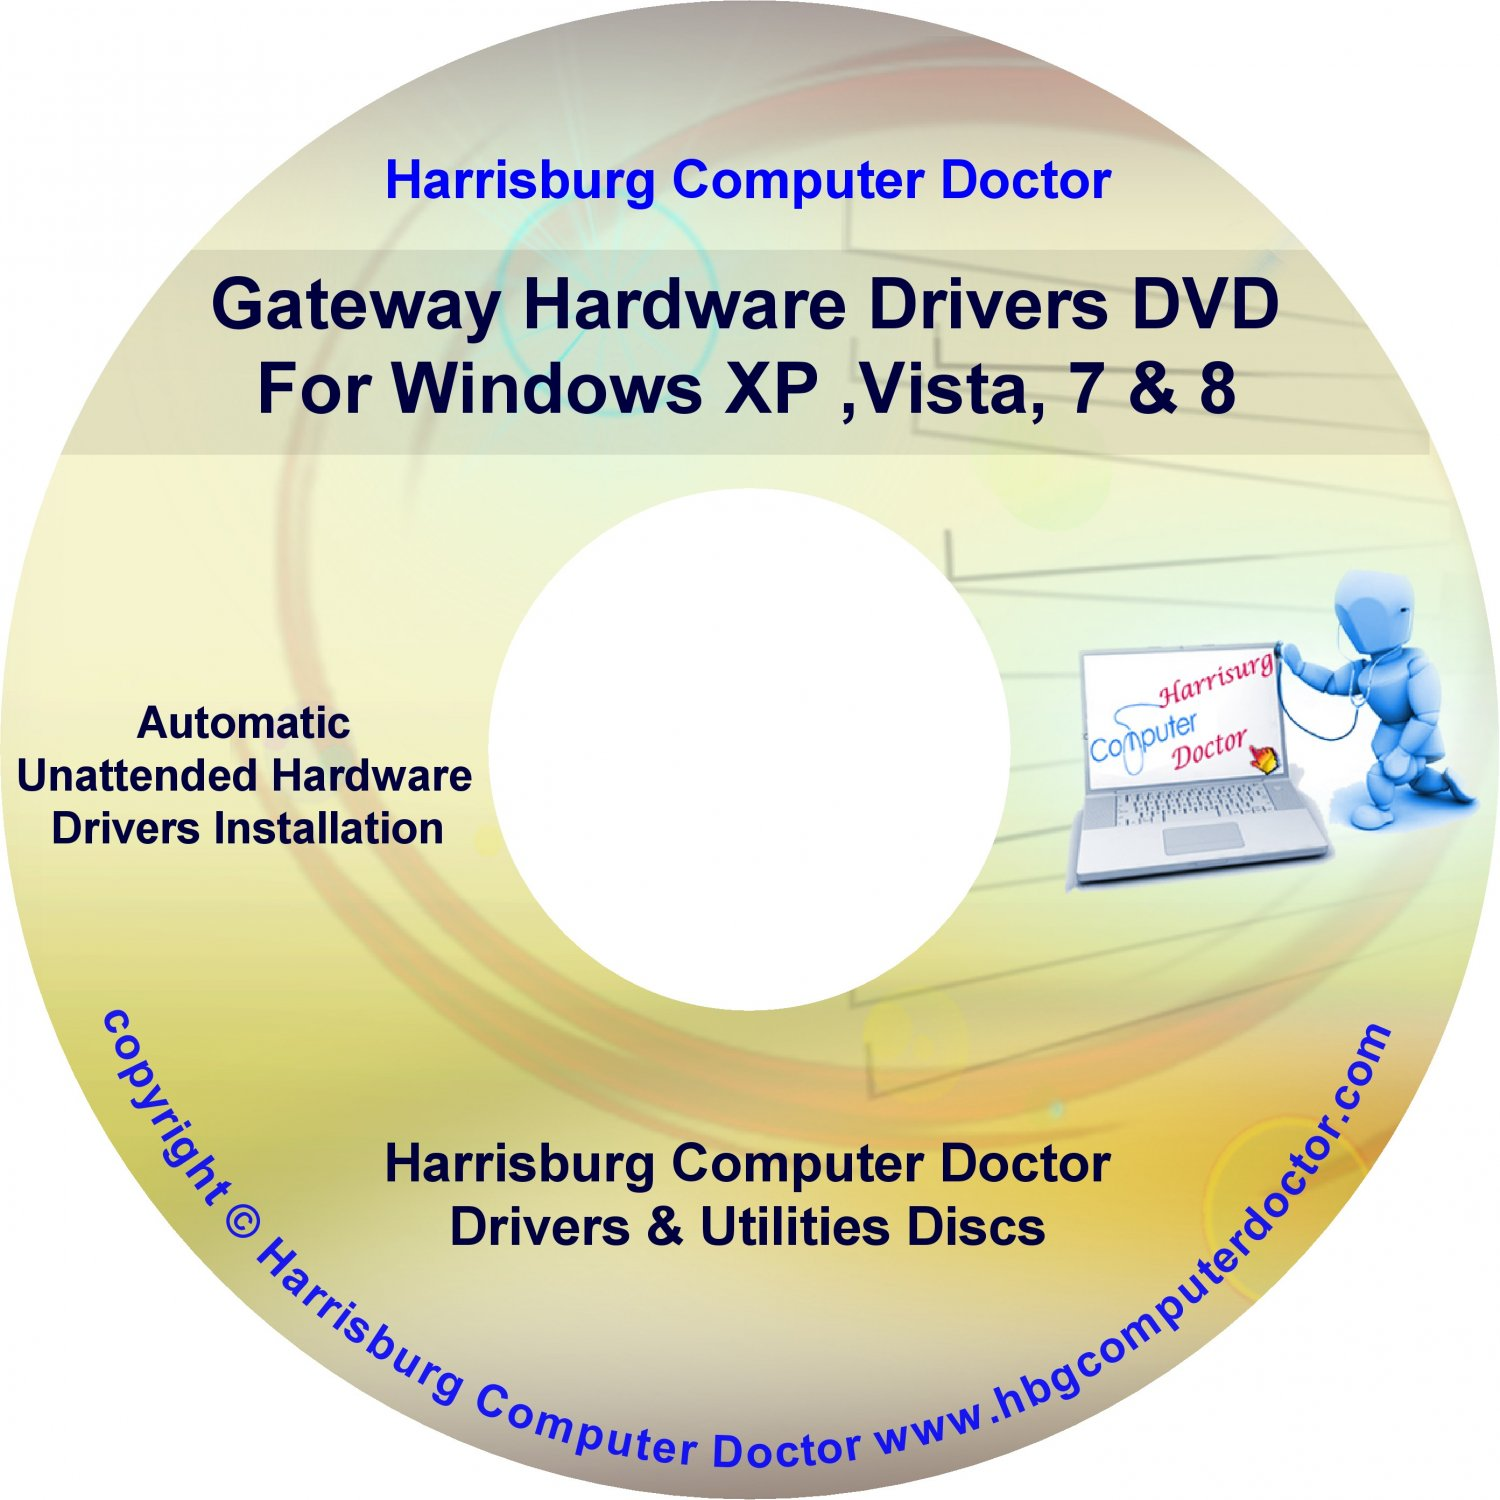 Gateway 200STM Drivers DVD For Windows, XP, Vista, 7 & 8